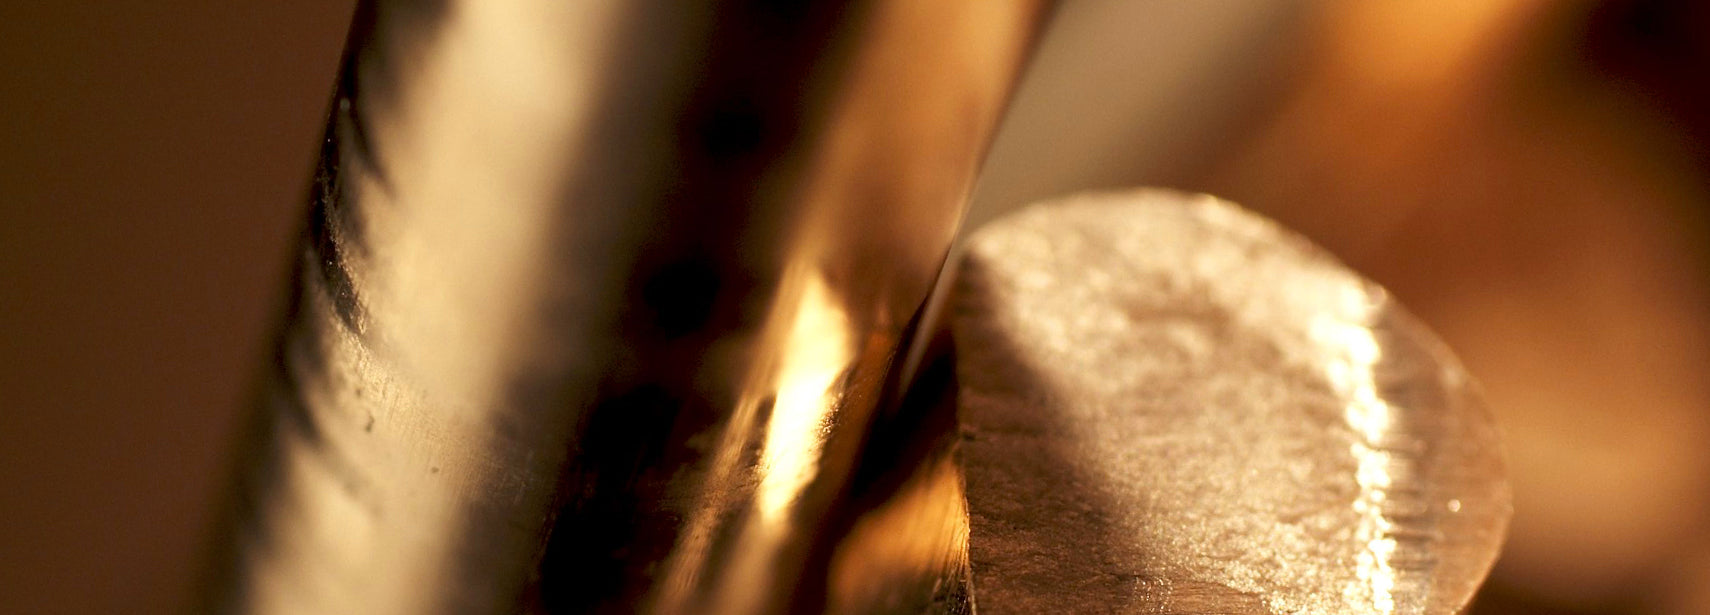 image of gold material